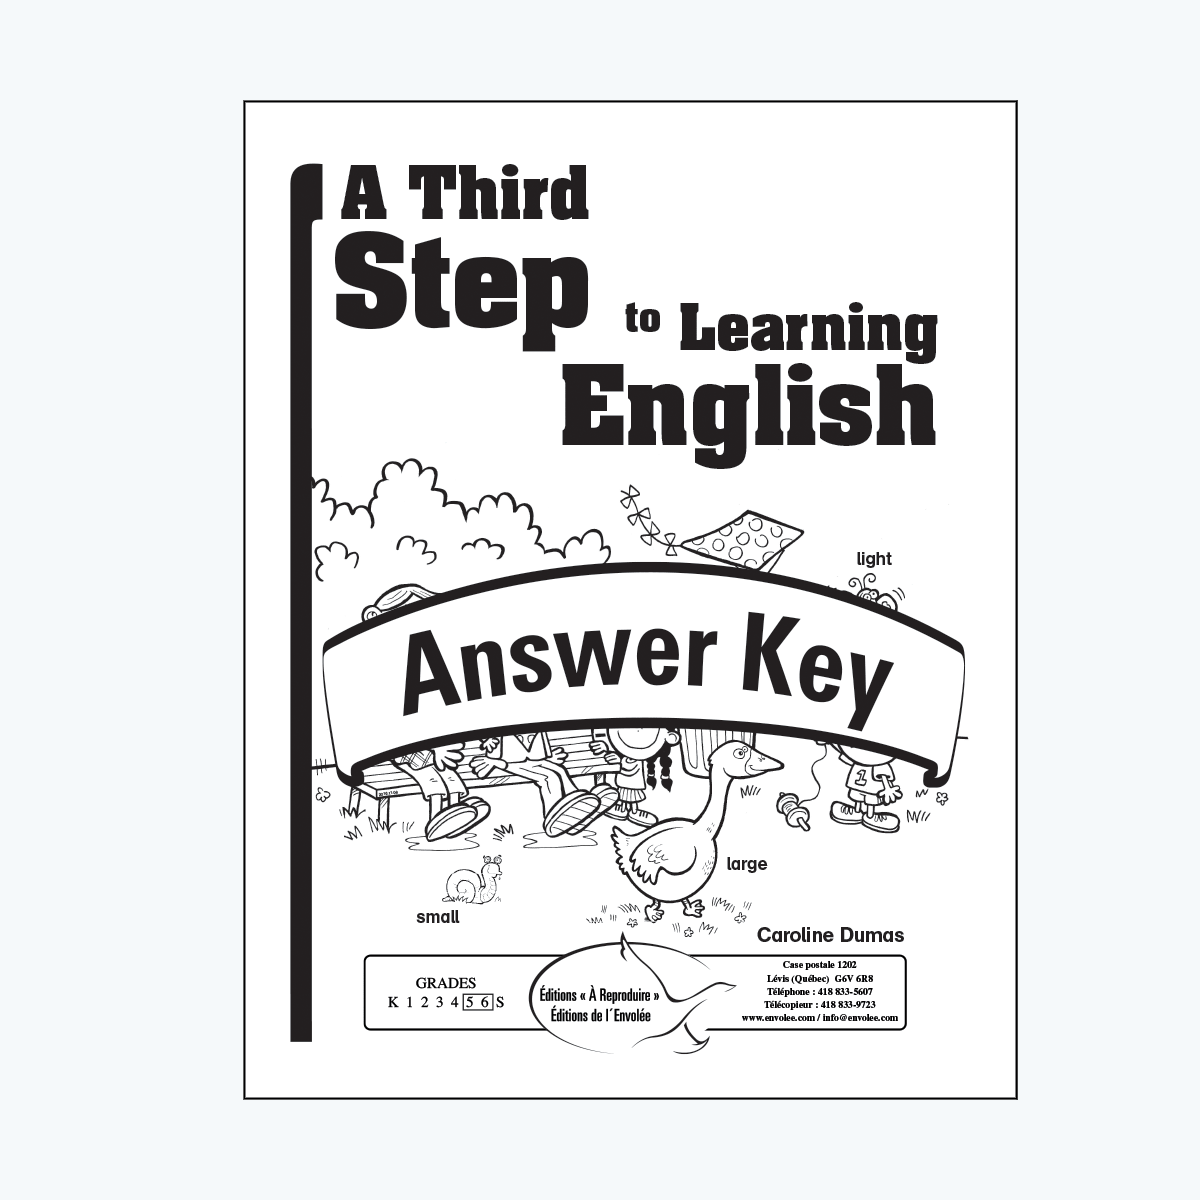 A Third Step to Learning English